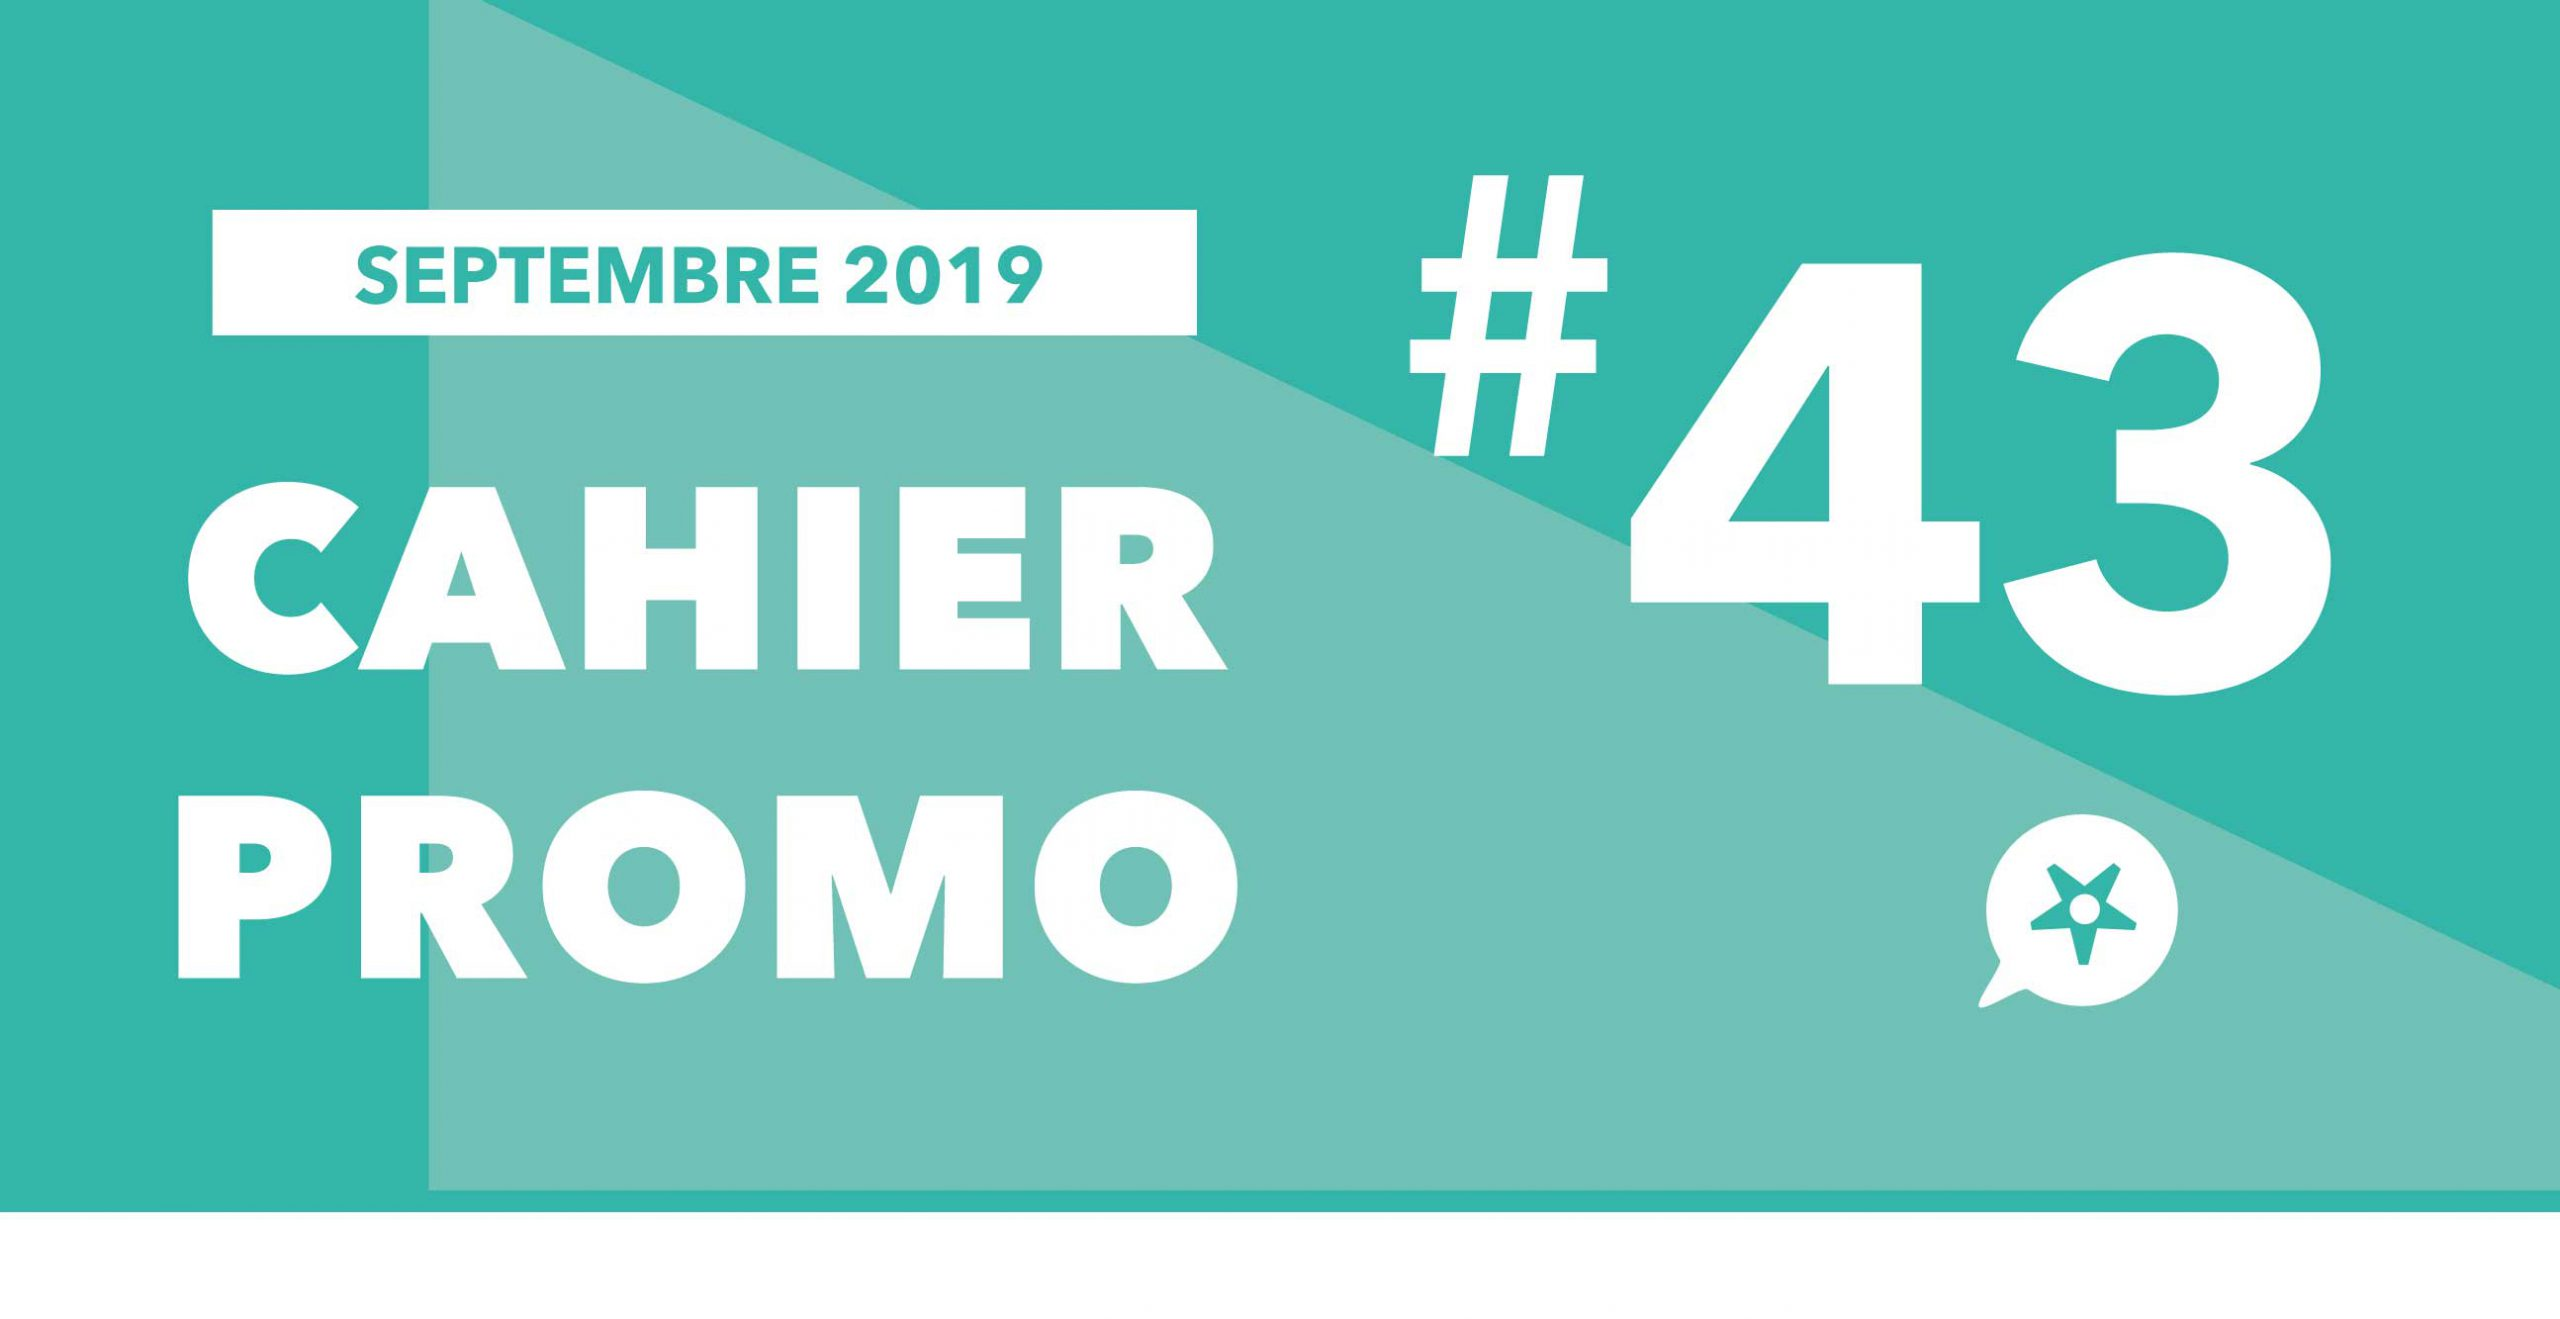 You are currently viewing CAHIER PROMO SEPTEMBRE 2019